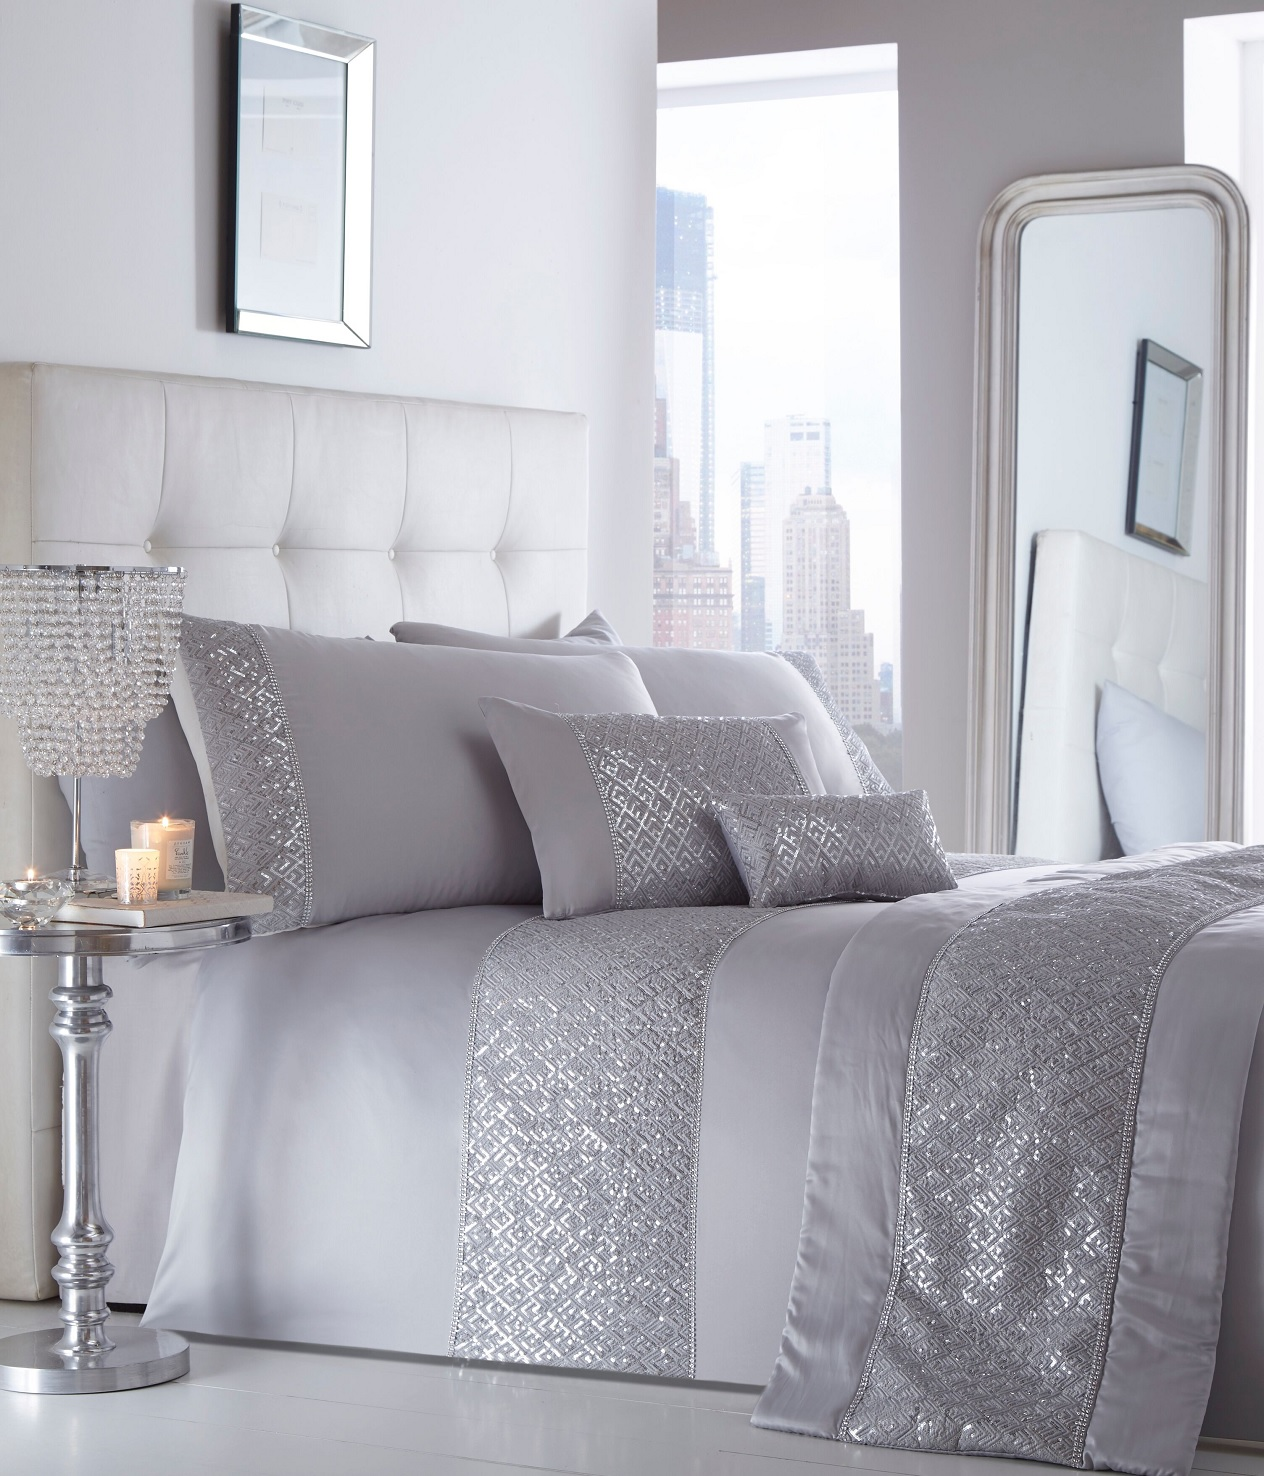 SHIMMER EMBELLISHED DUVET COVER SET SEQUIN DIAMANTE ...